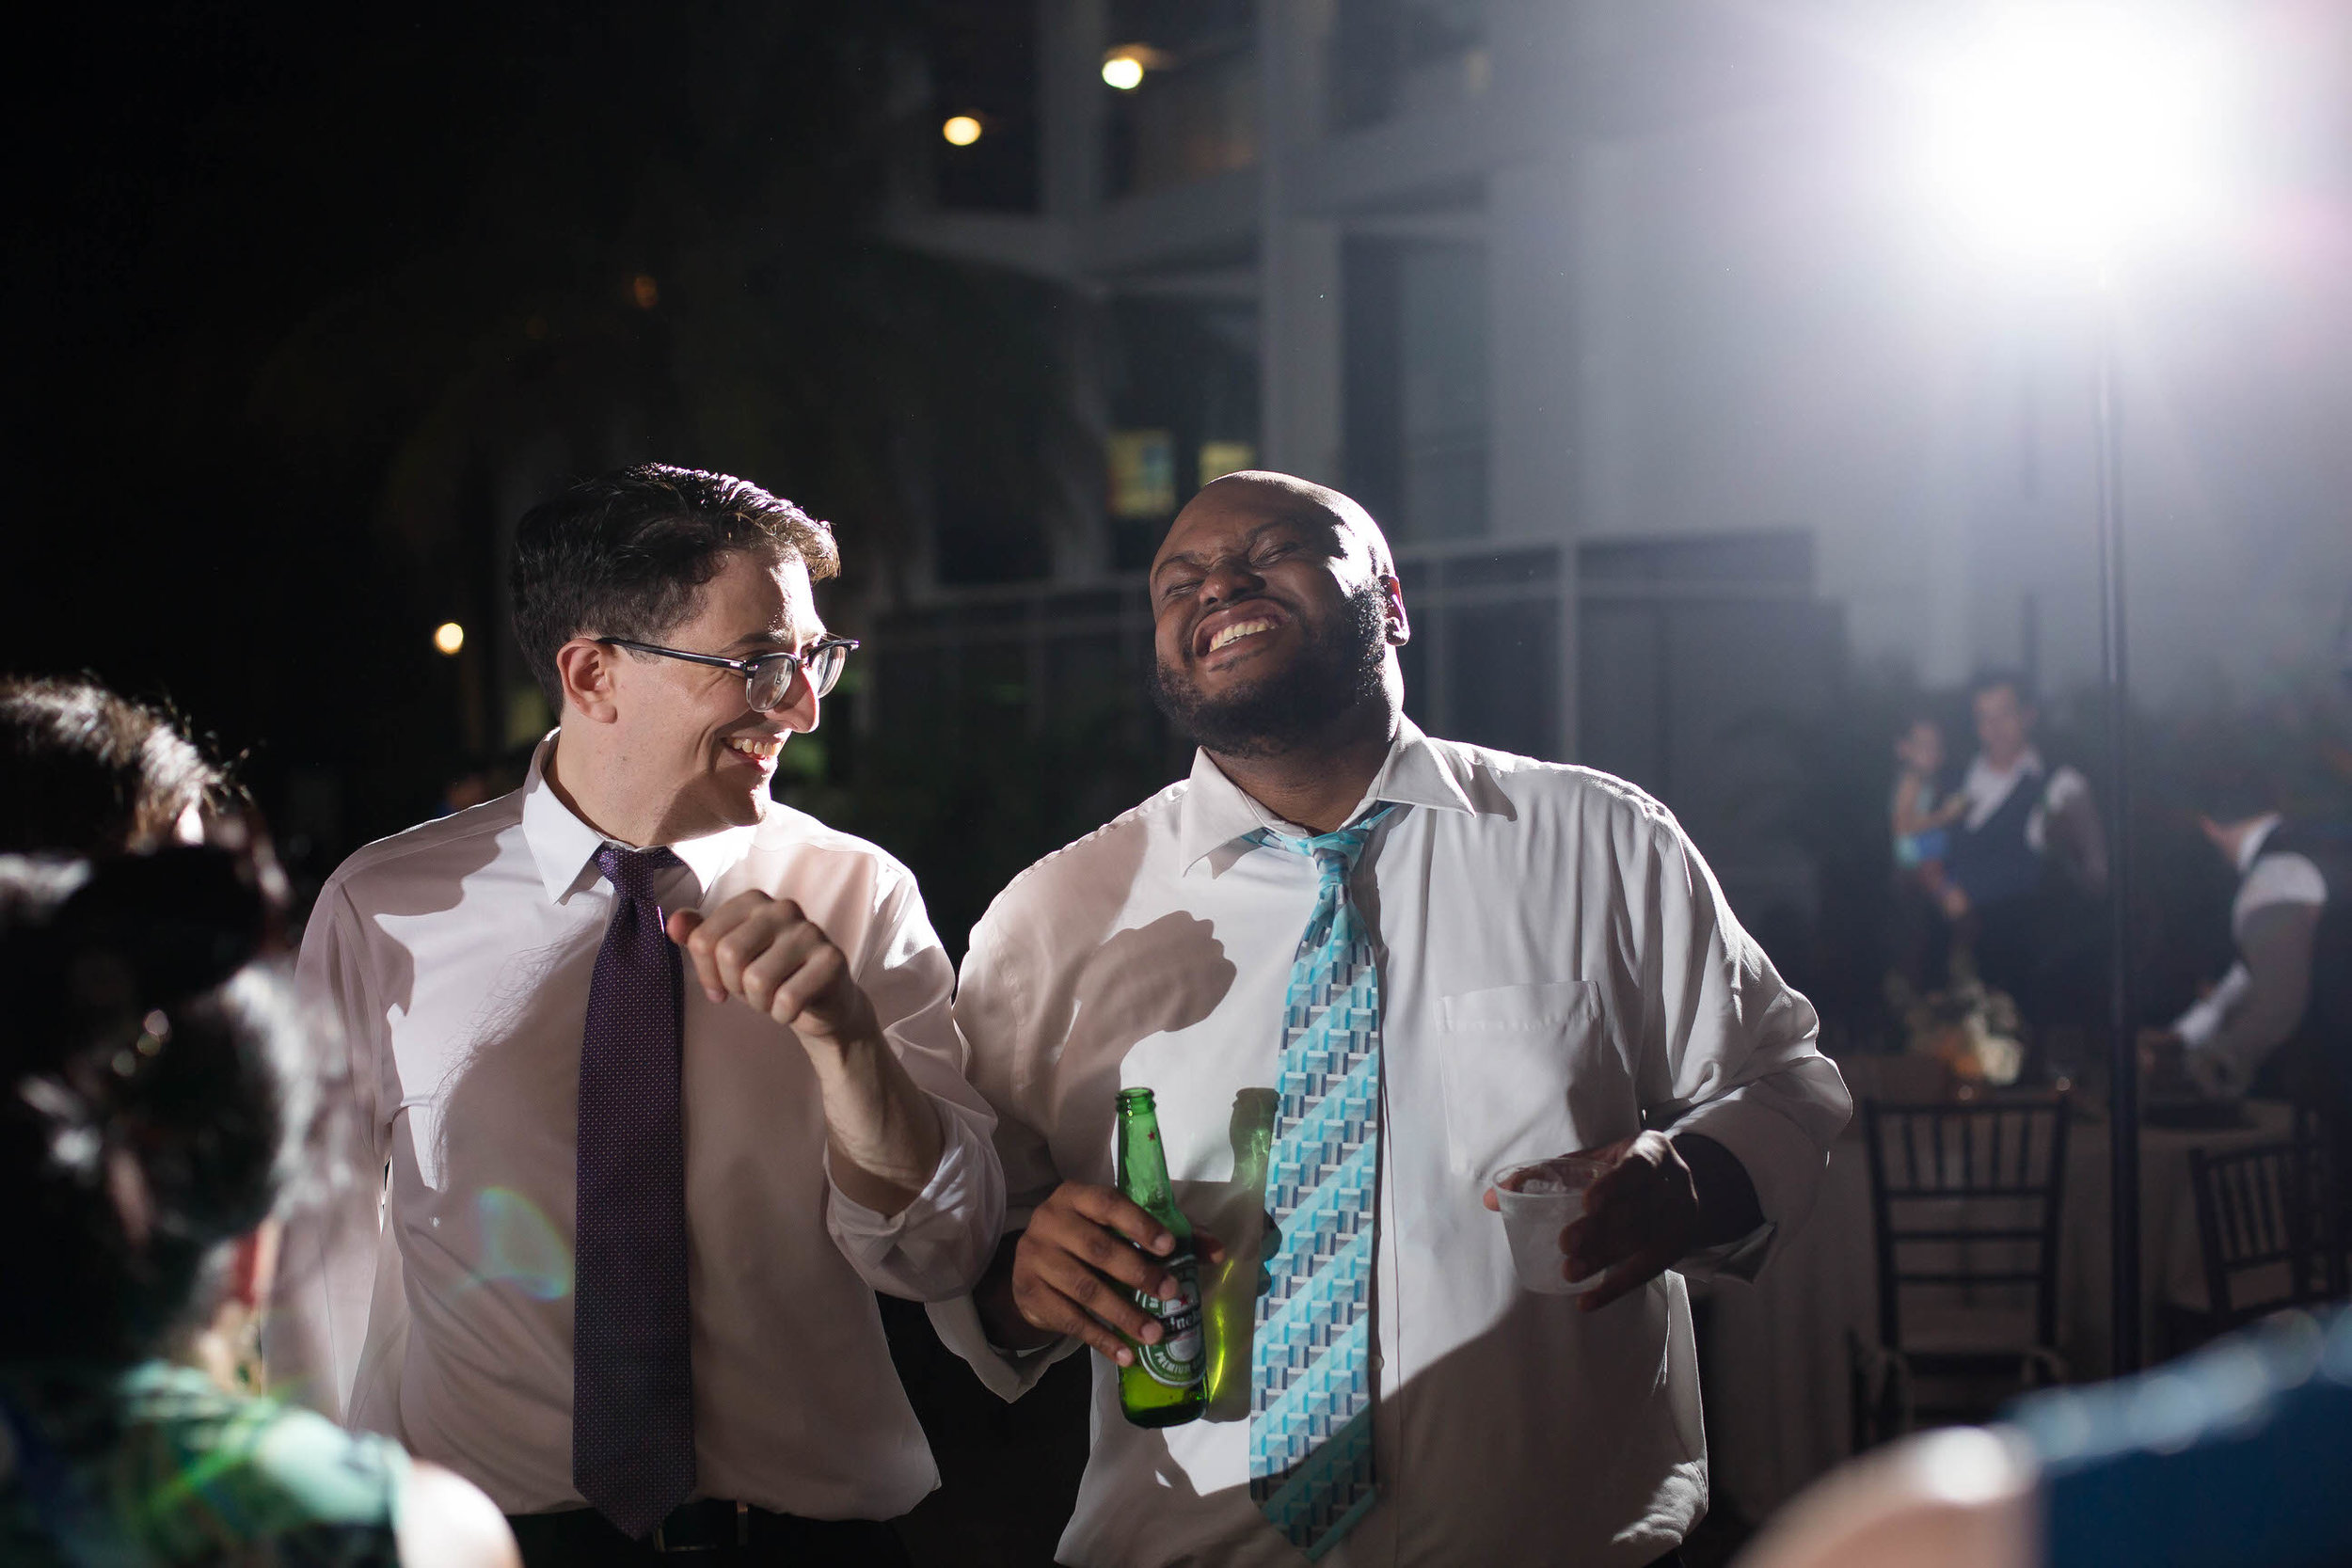 dancing_fun_tiny_house_photo_best_wedding_photographer_miami.jpg